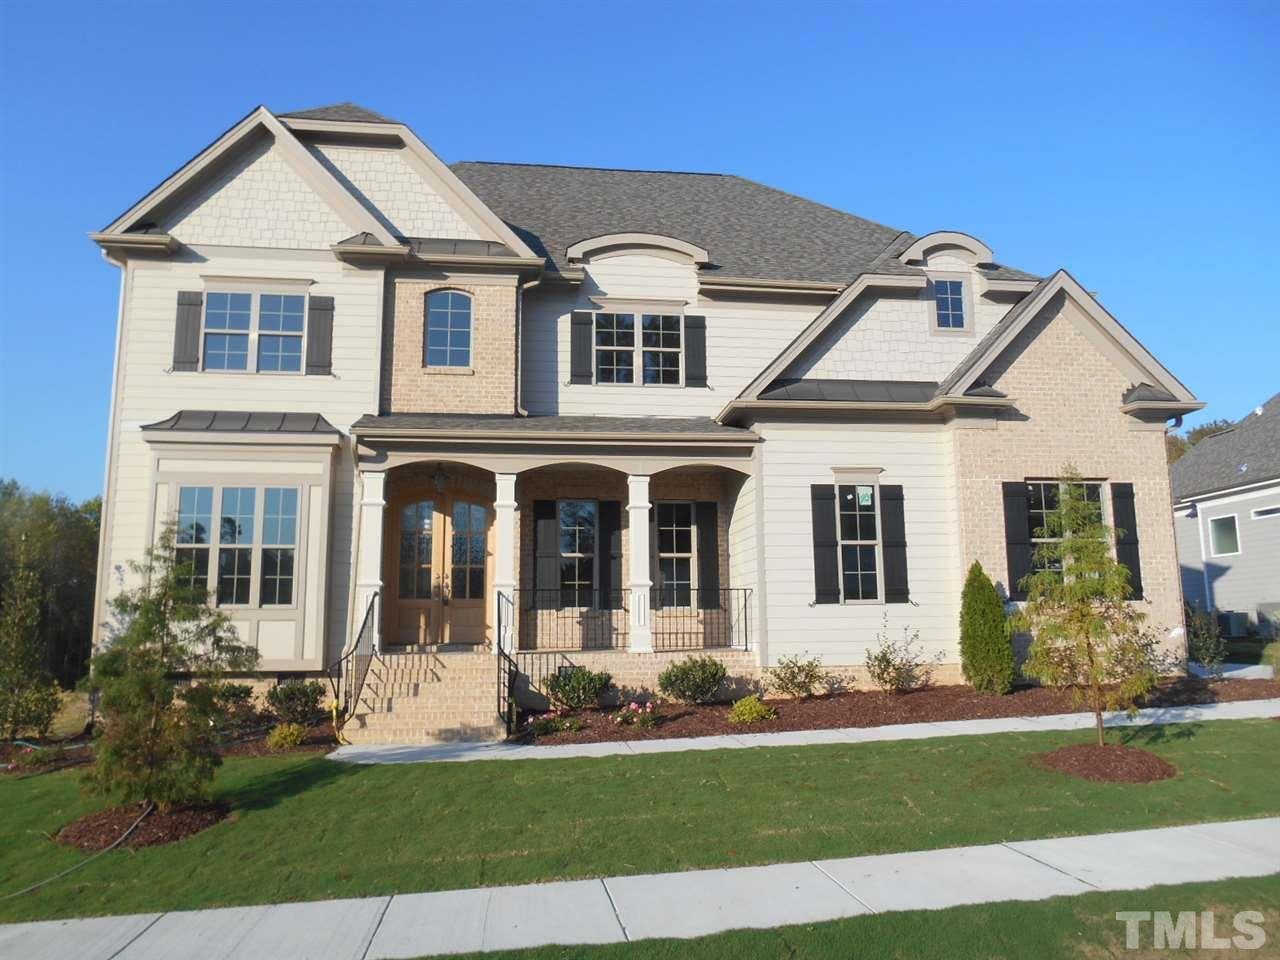 6740 Millory Springs Ln, Cary, NC